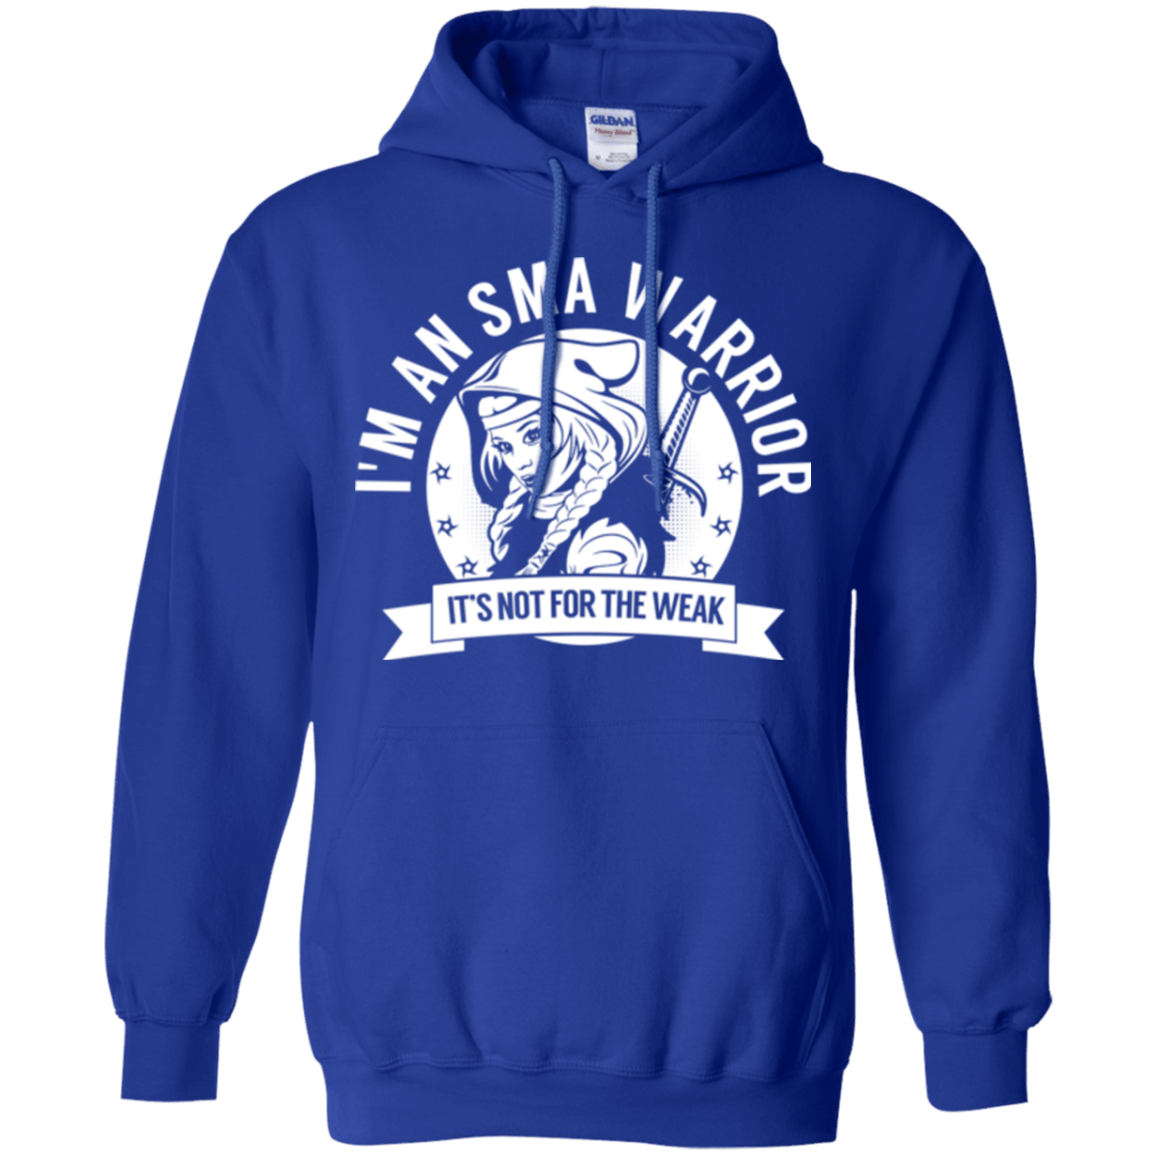 Sweatshirts - Spinal Muscular Atrophy - SMA Warrior Hooded Pullover Hoodie 8 Oz.